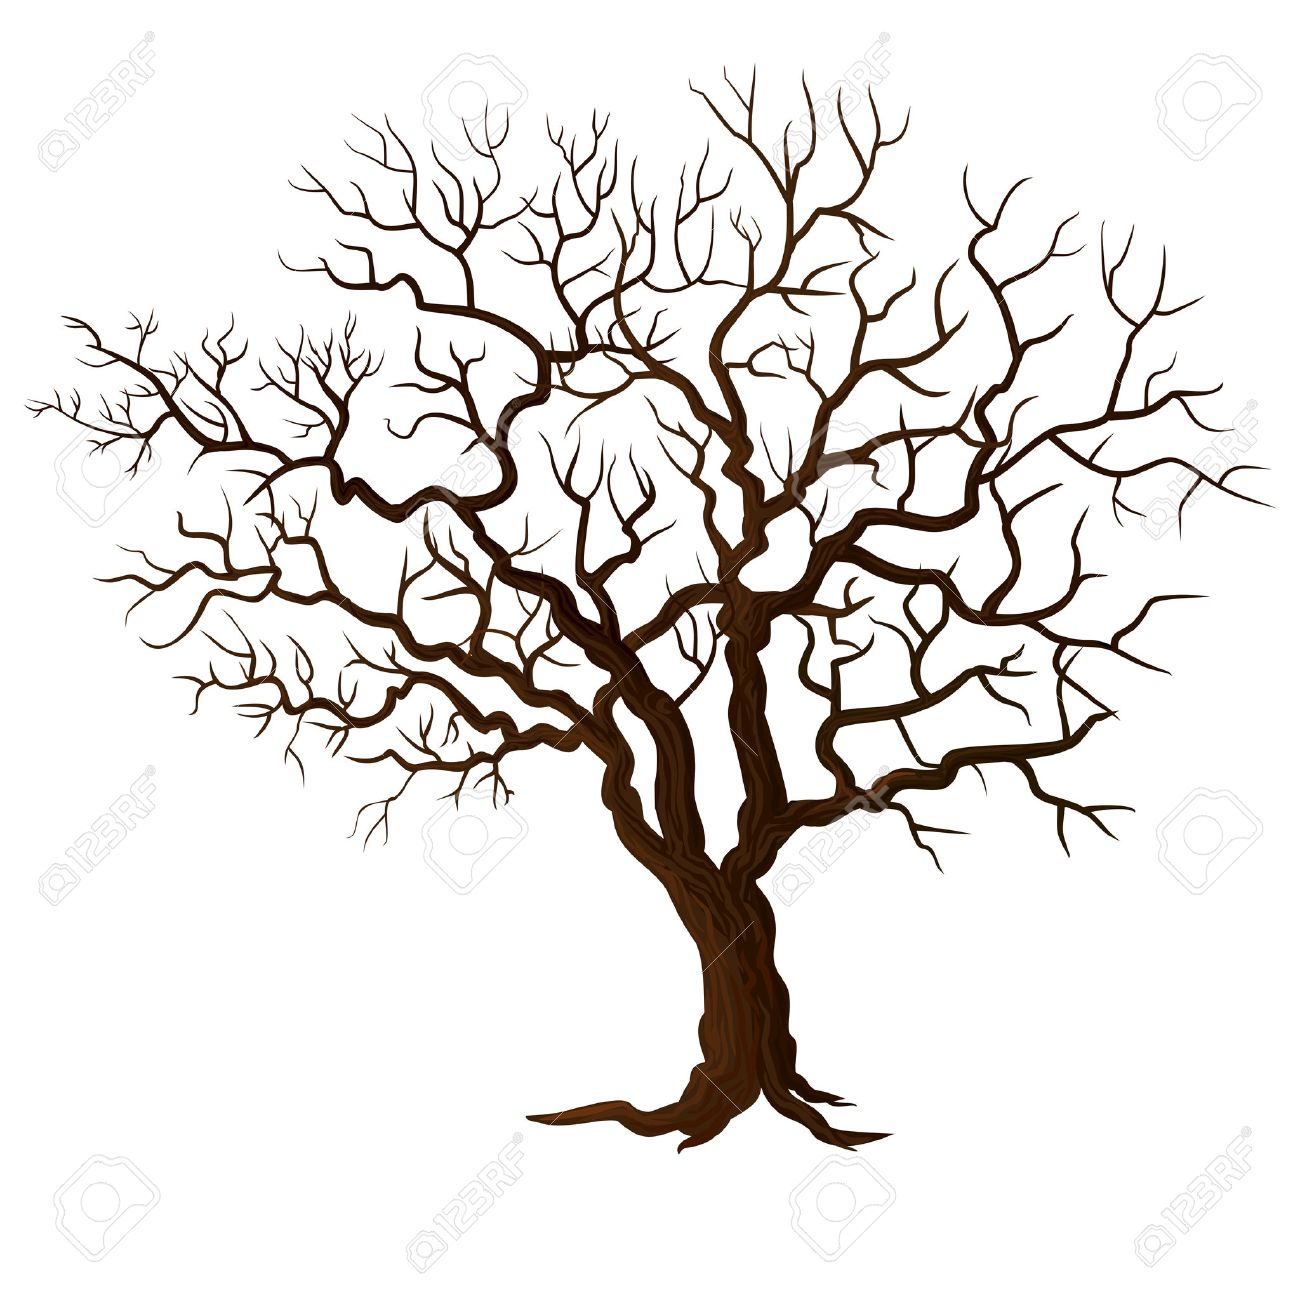 Tree without leaves isolated How To Draw A Cartoon Tree Without Leaves